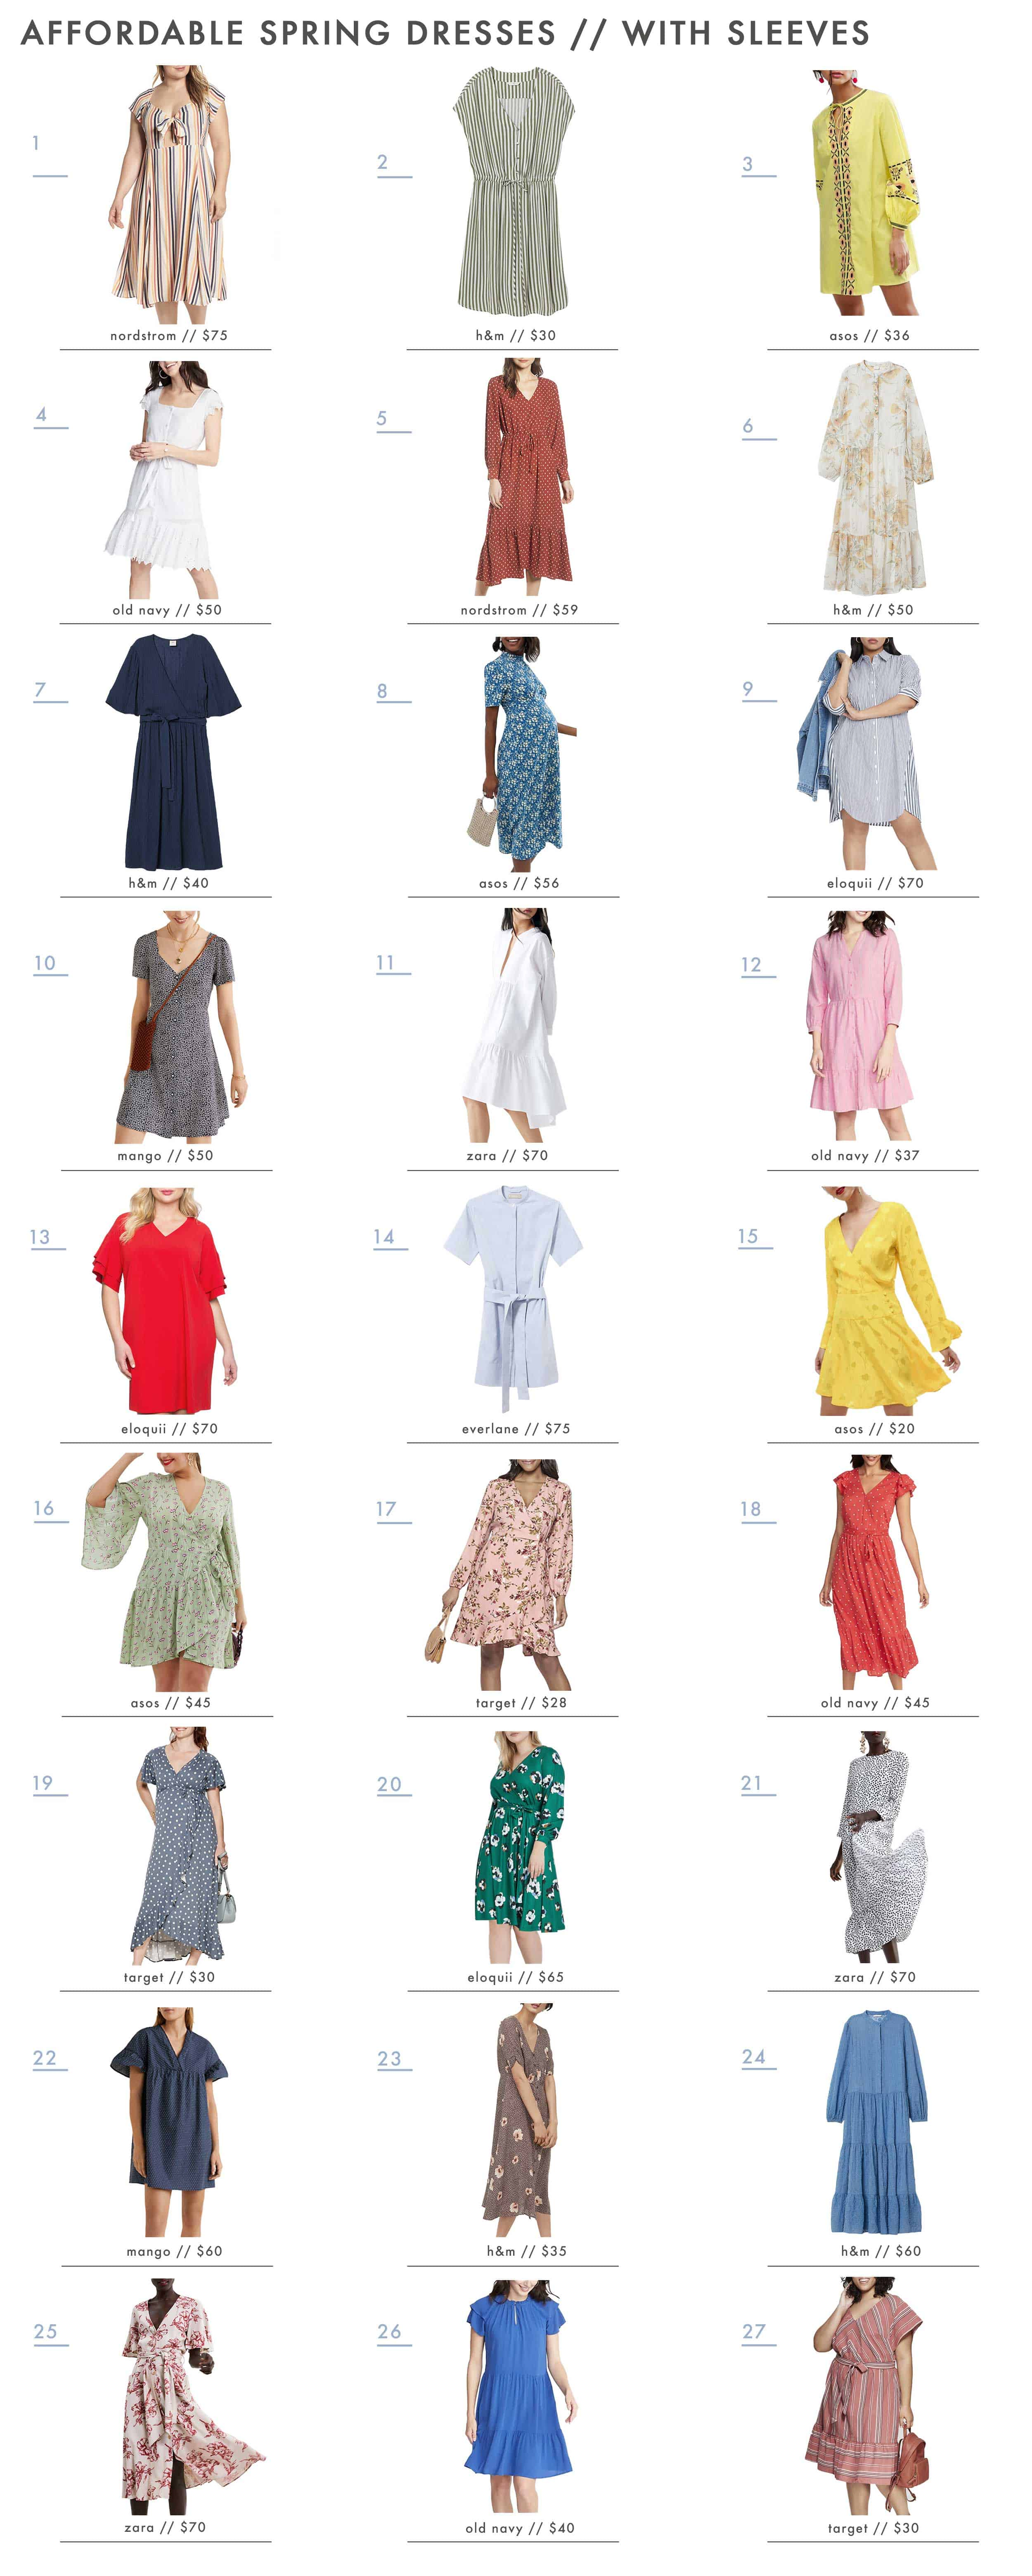 Emily Henderson Affordable Spring Dresses With Sleeves New